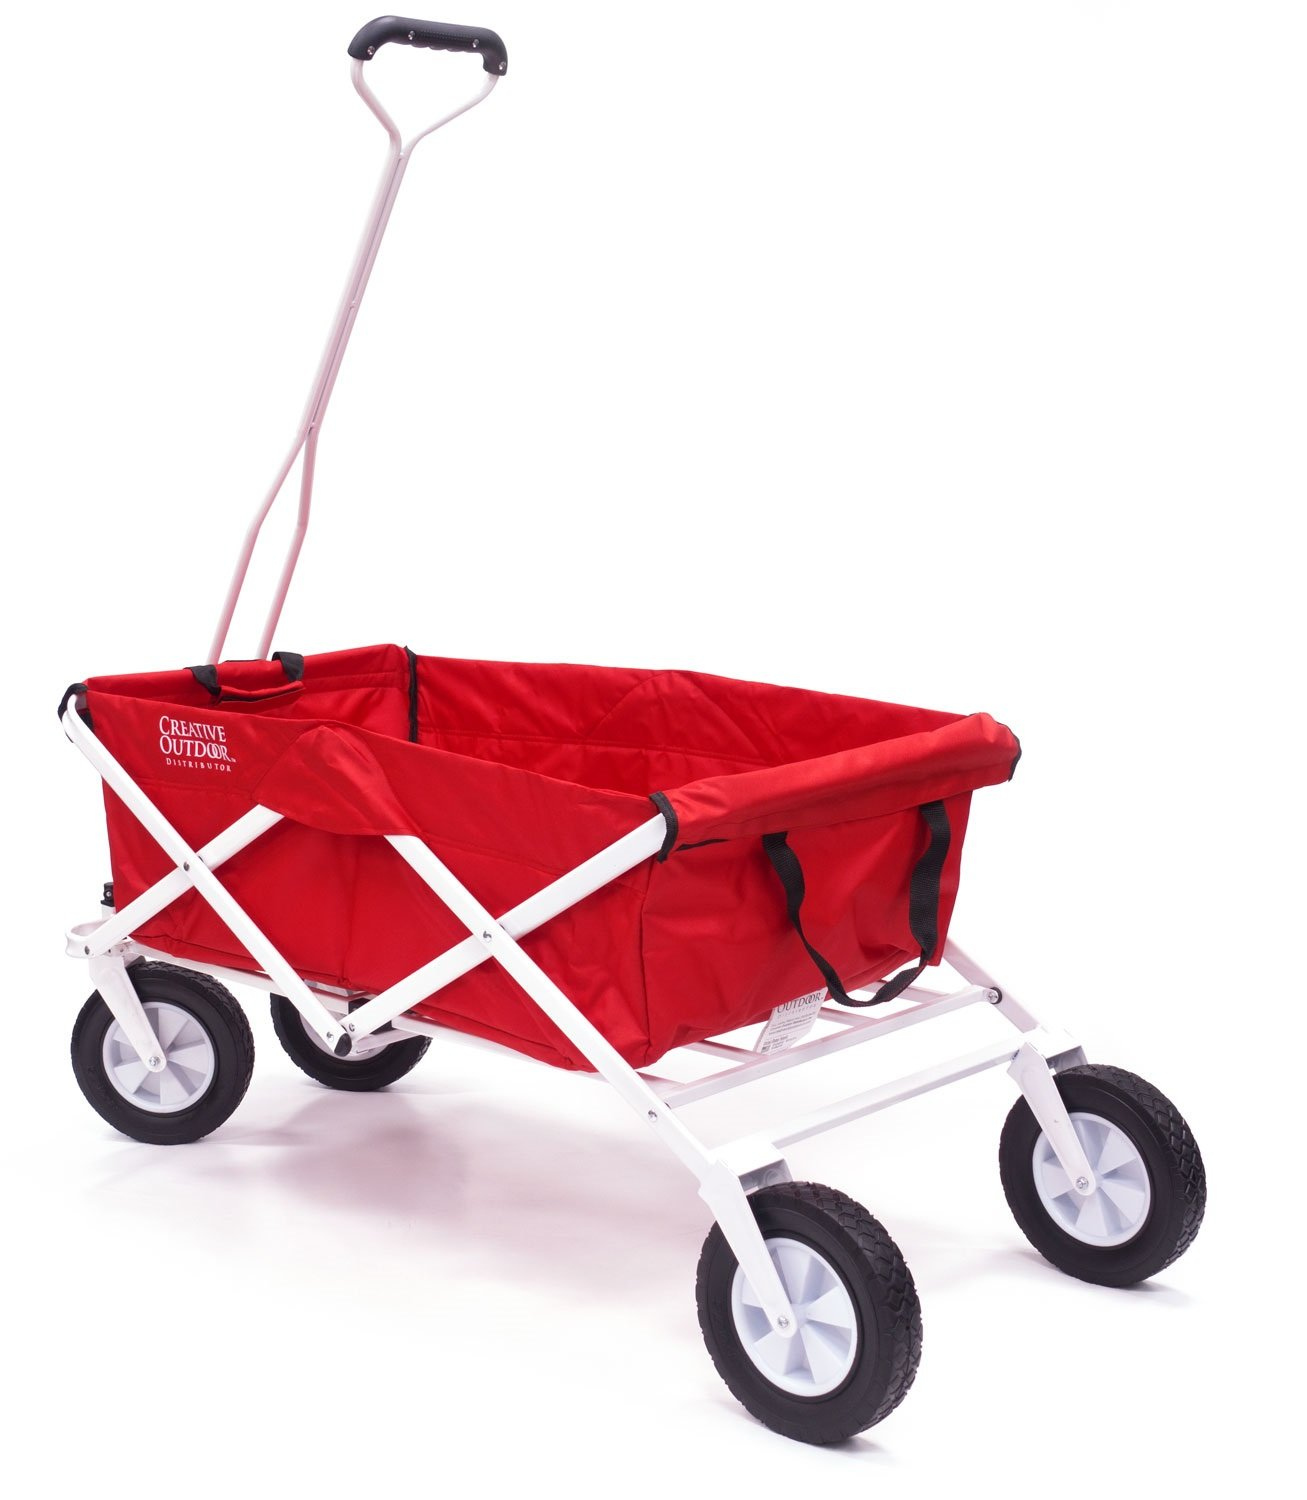 Creative Outdoor Distributors USA Folding Wagon without Top, Red